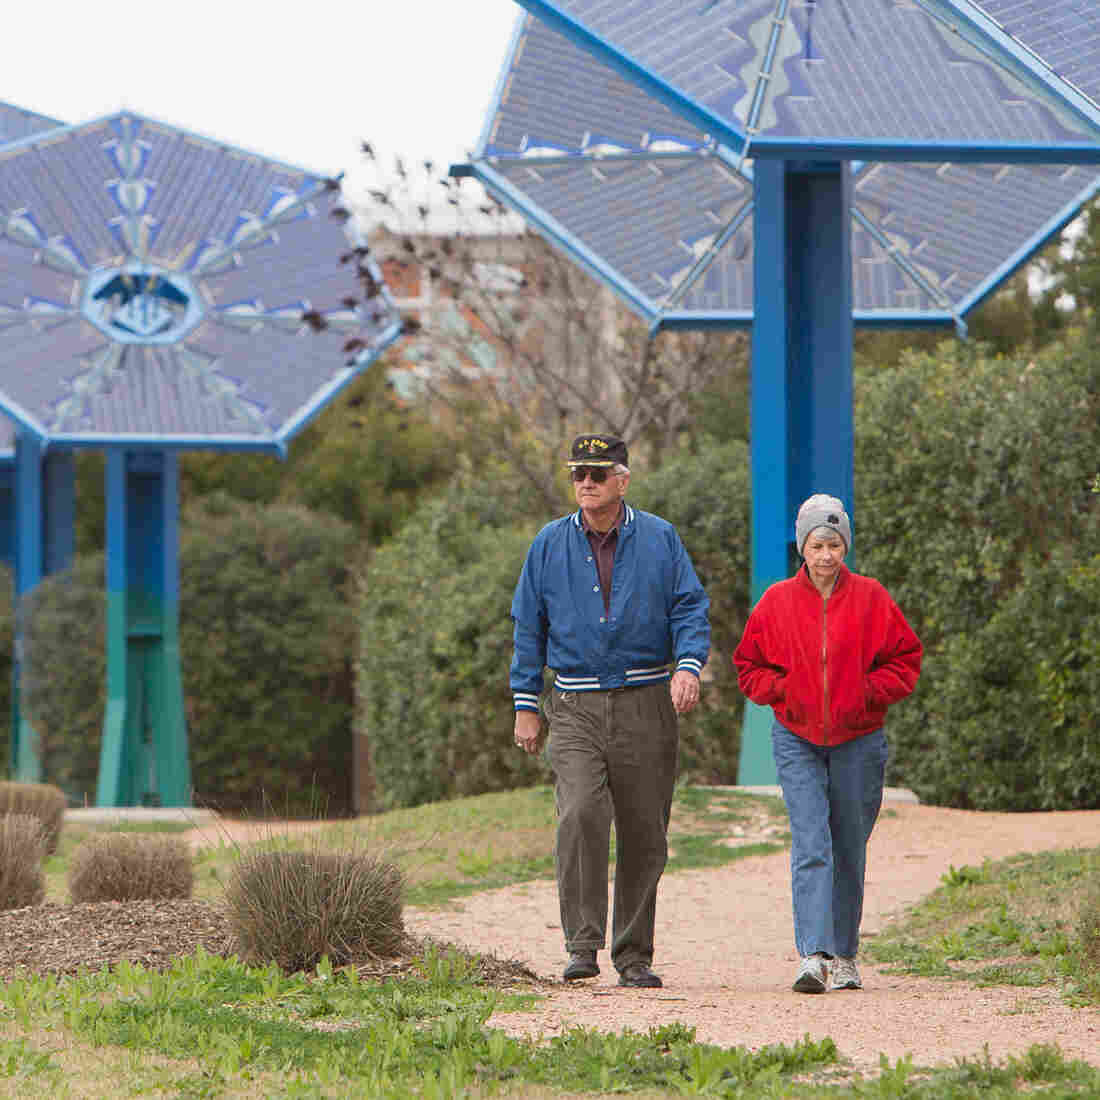 With Porches And Parks, A Texas Community Aims For Urban Utopia